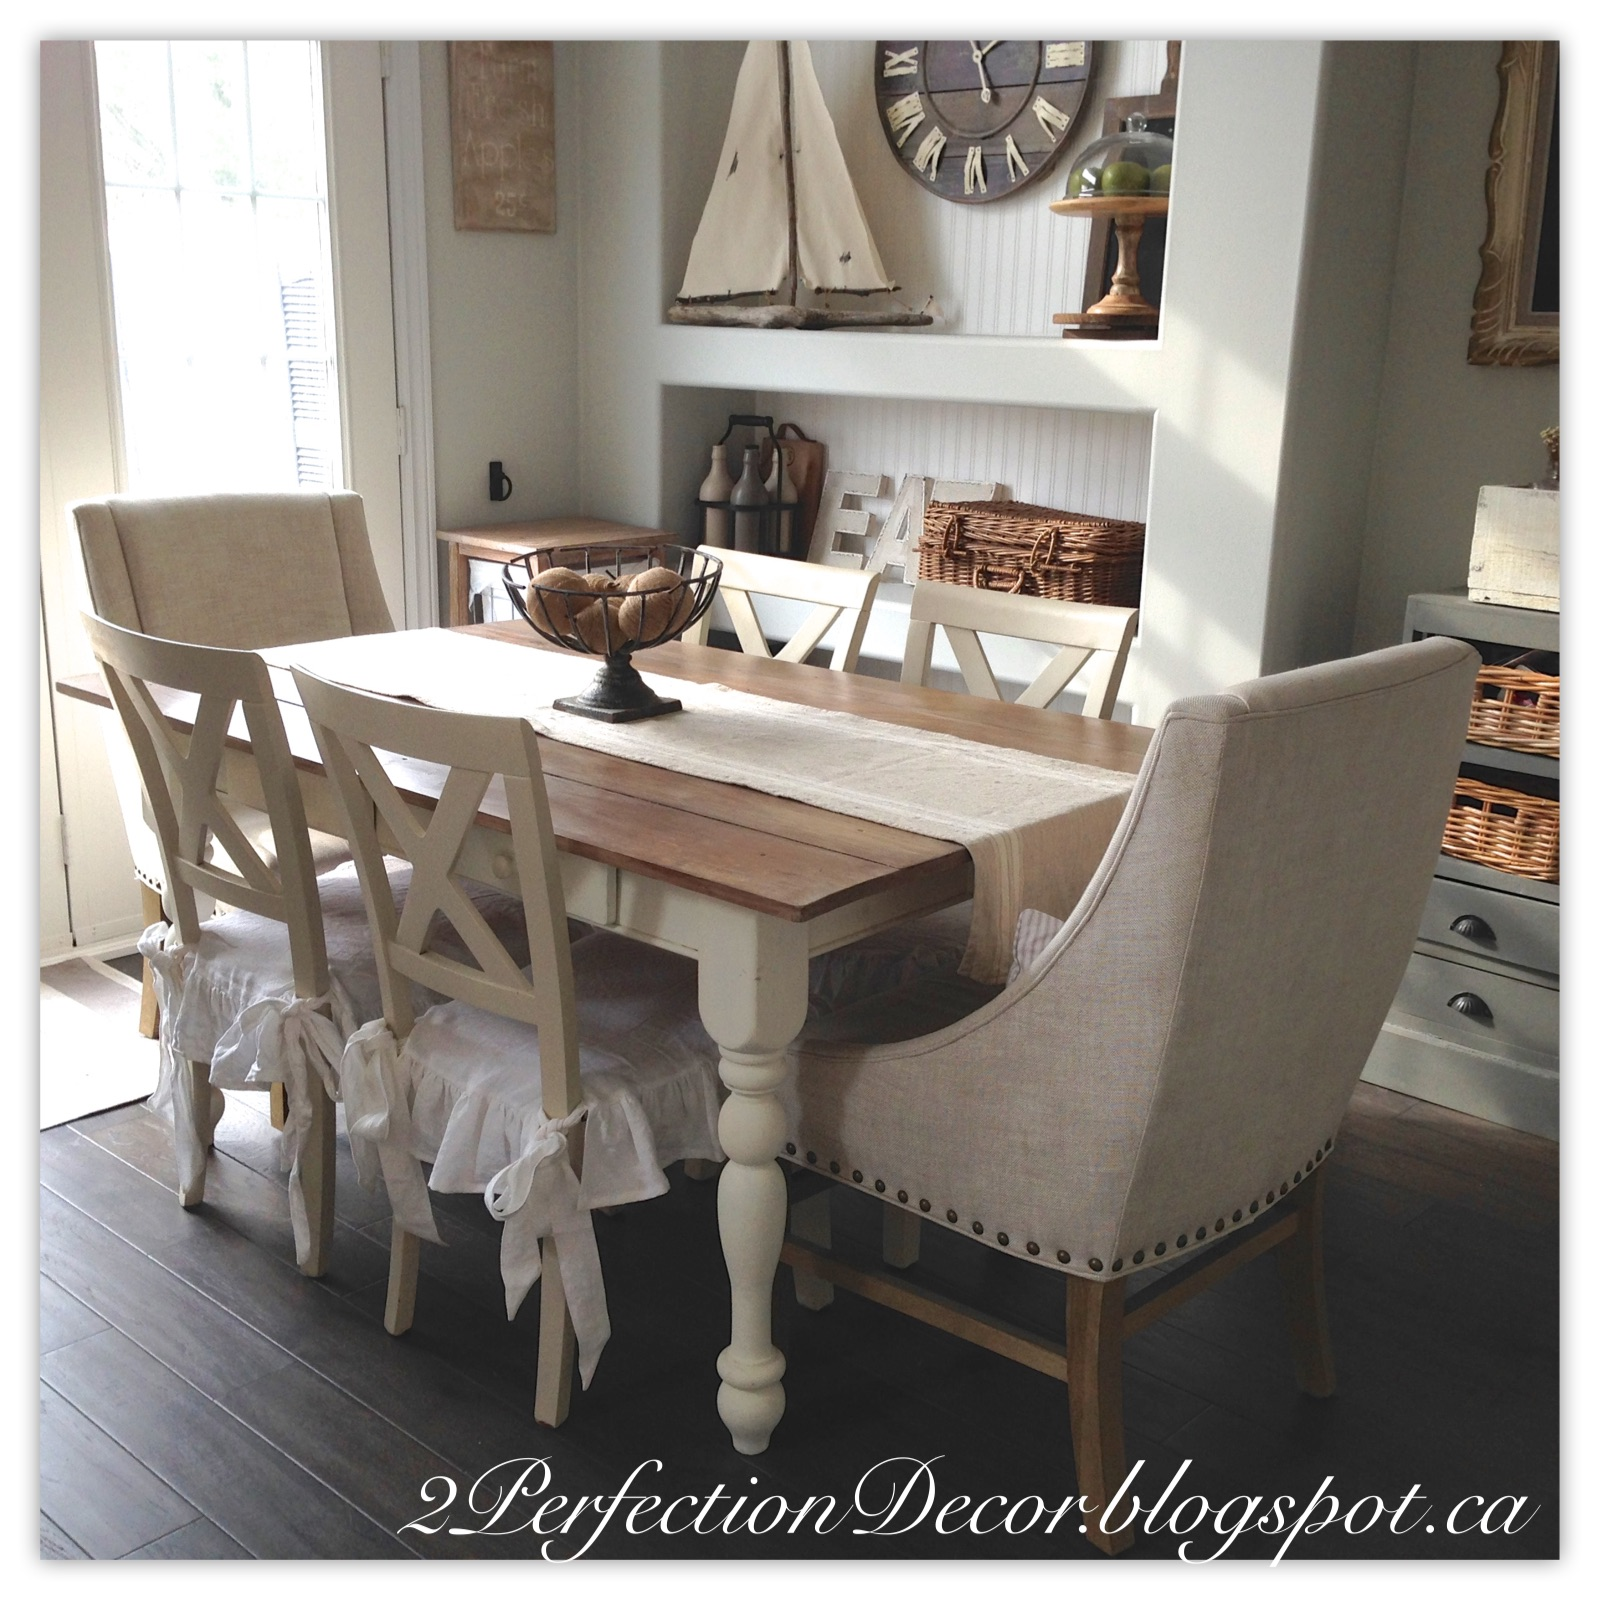 Amazing And here you have it our pleted Rustic Planked Farmhouse Table